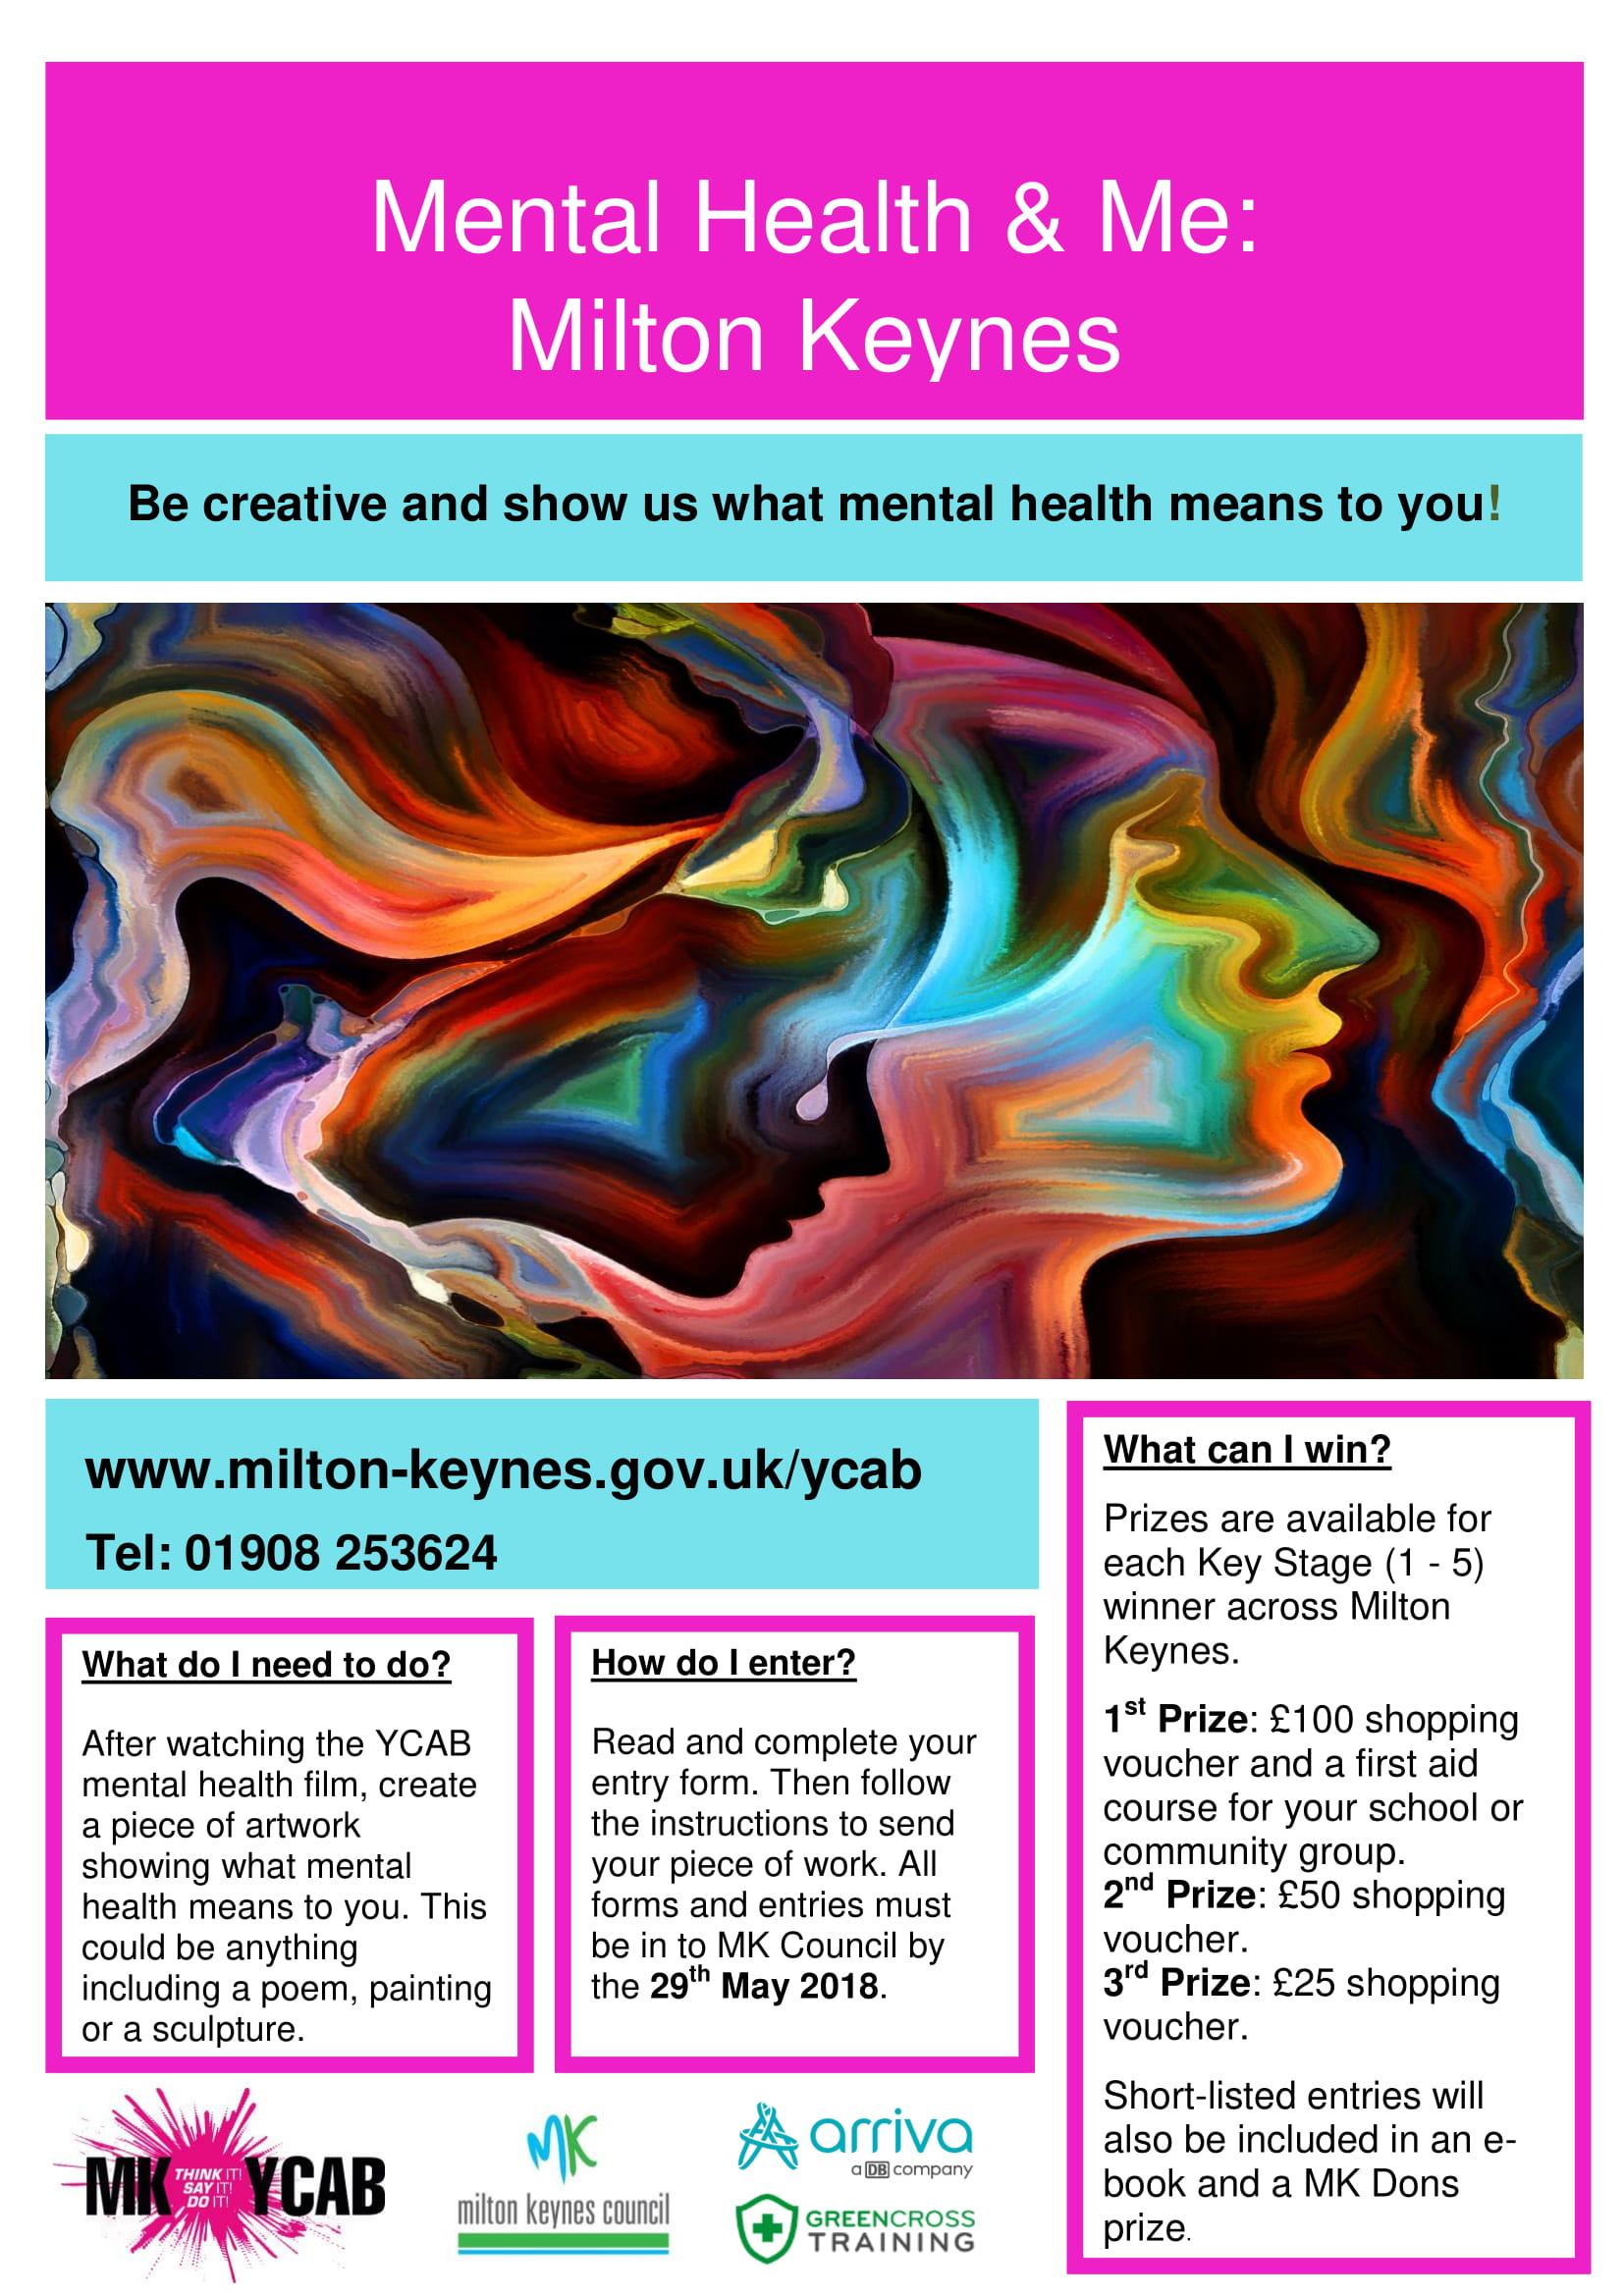 Milton Keynes Youth Cabinet Mental Health And Me Competition COMMUNITY ACTION MK